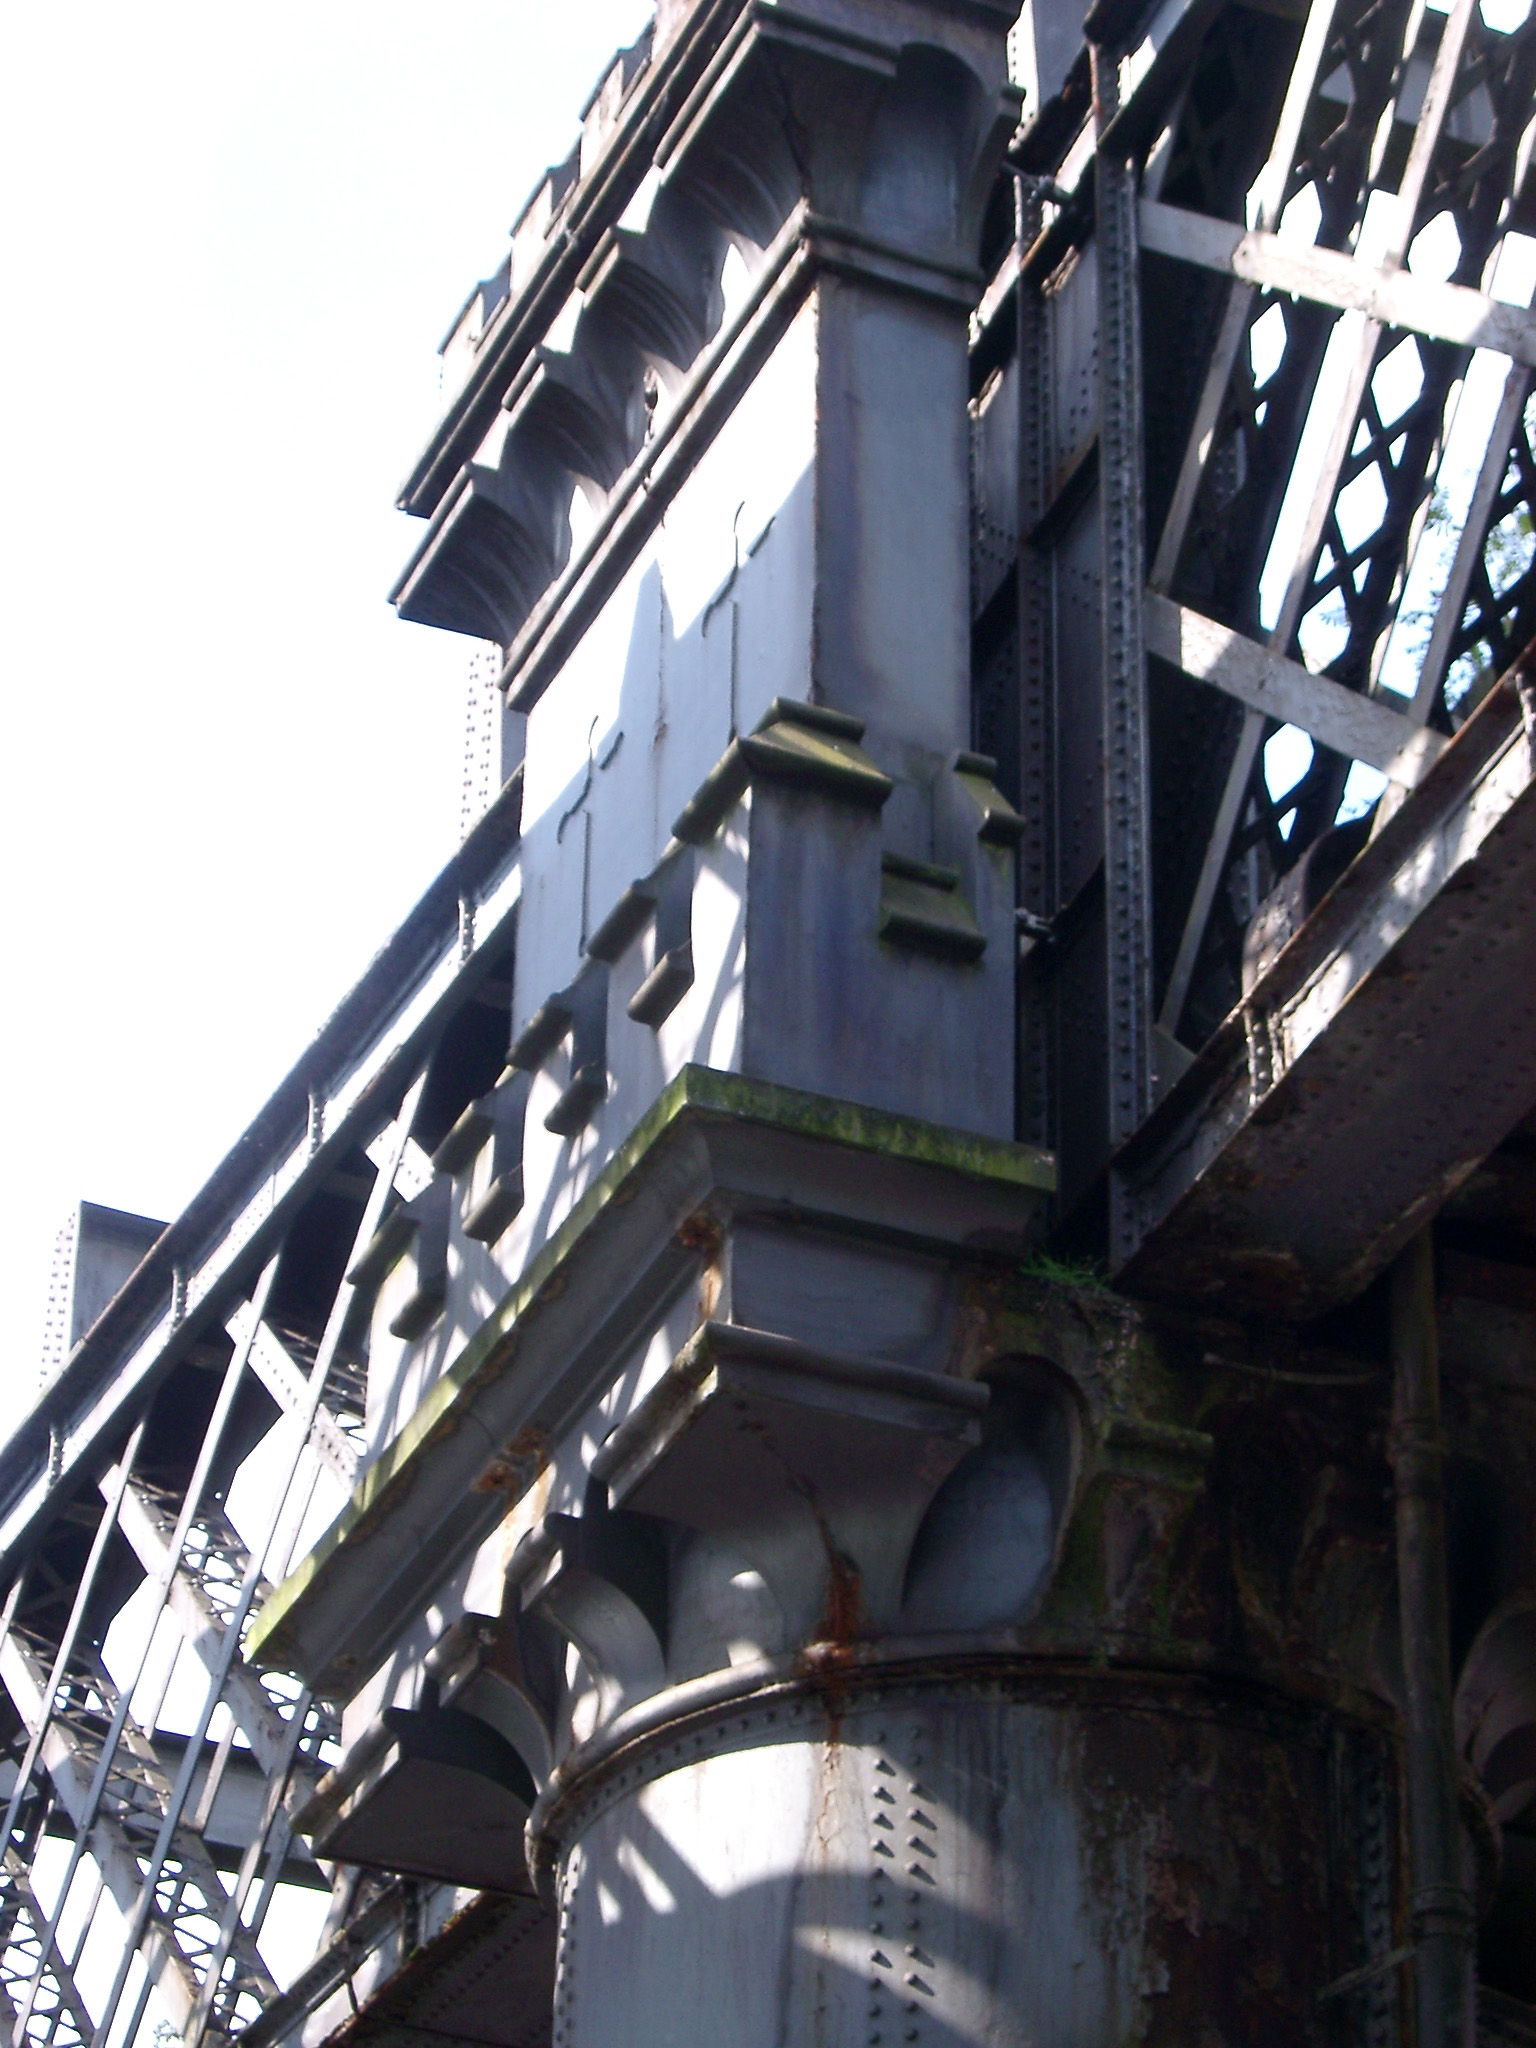 Details of an old iron railway bridge in the industrial conservation area of Castlefield, Manchester